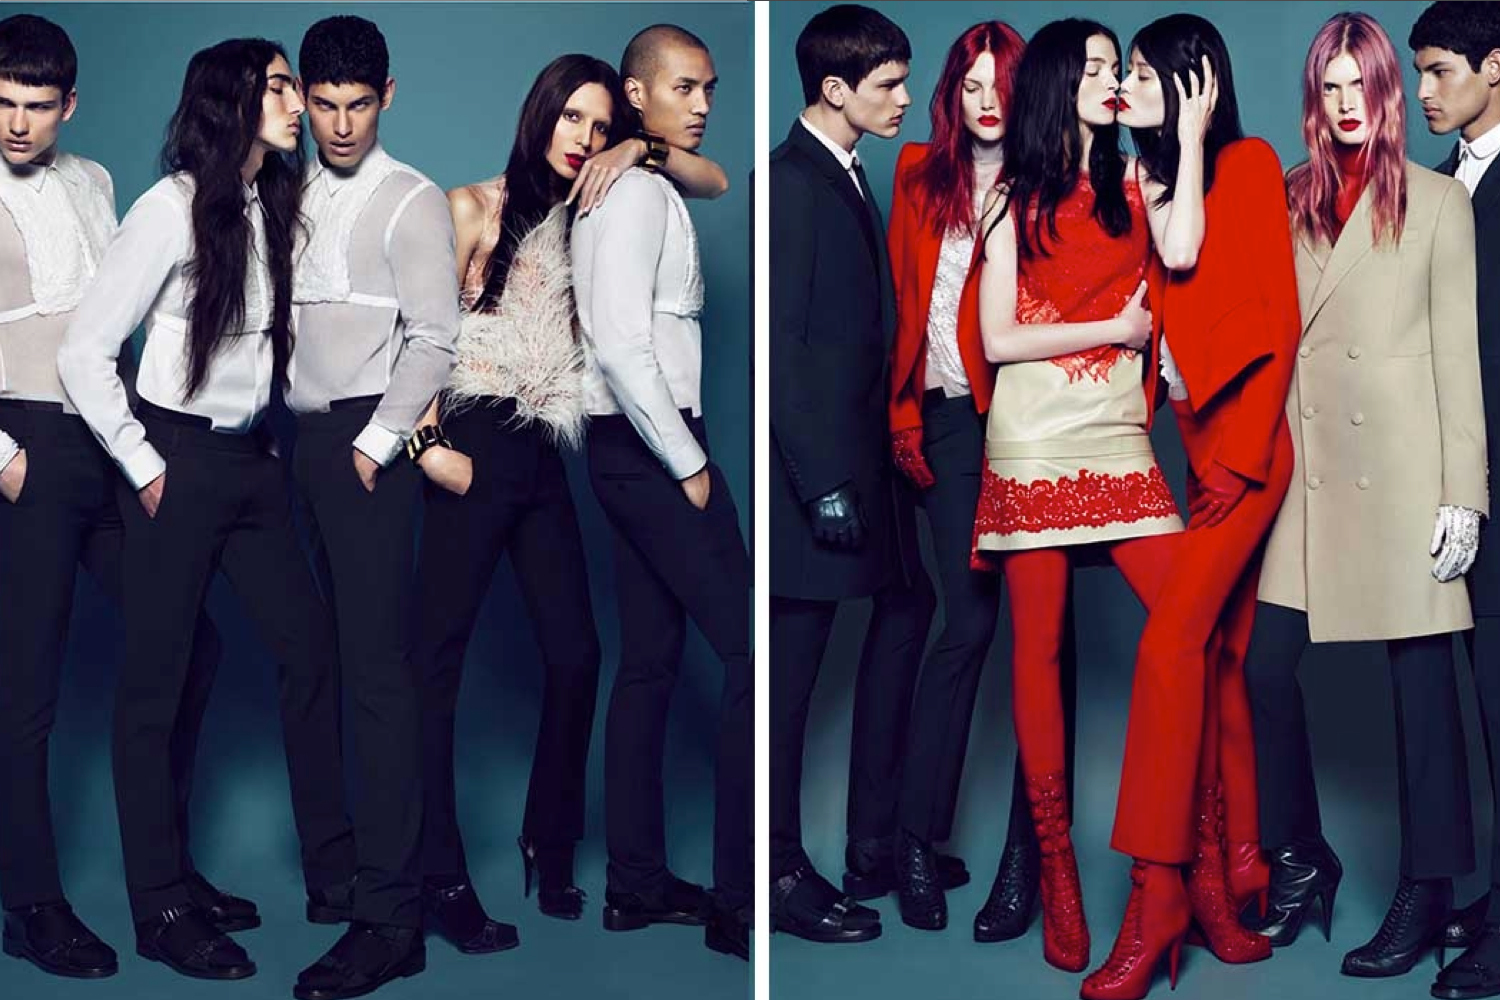 Fall givenchy campaign new photo